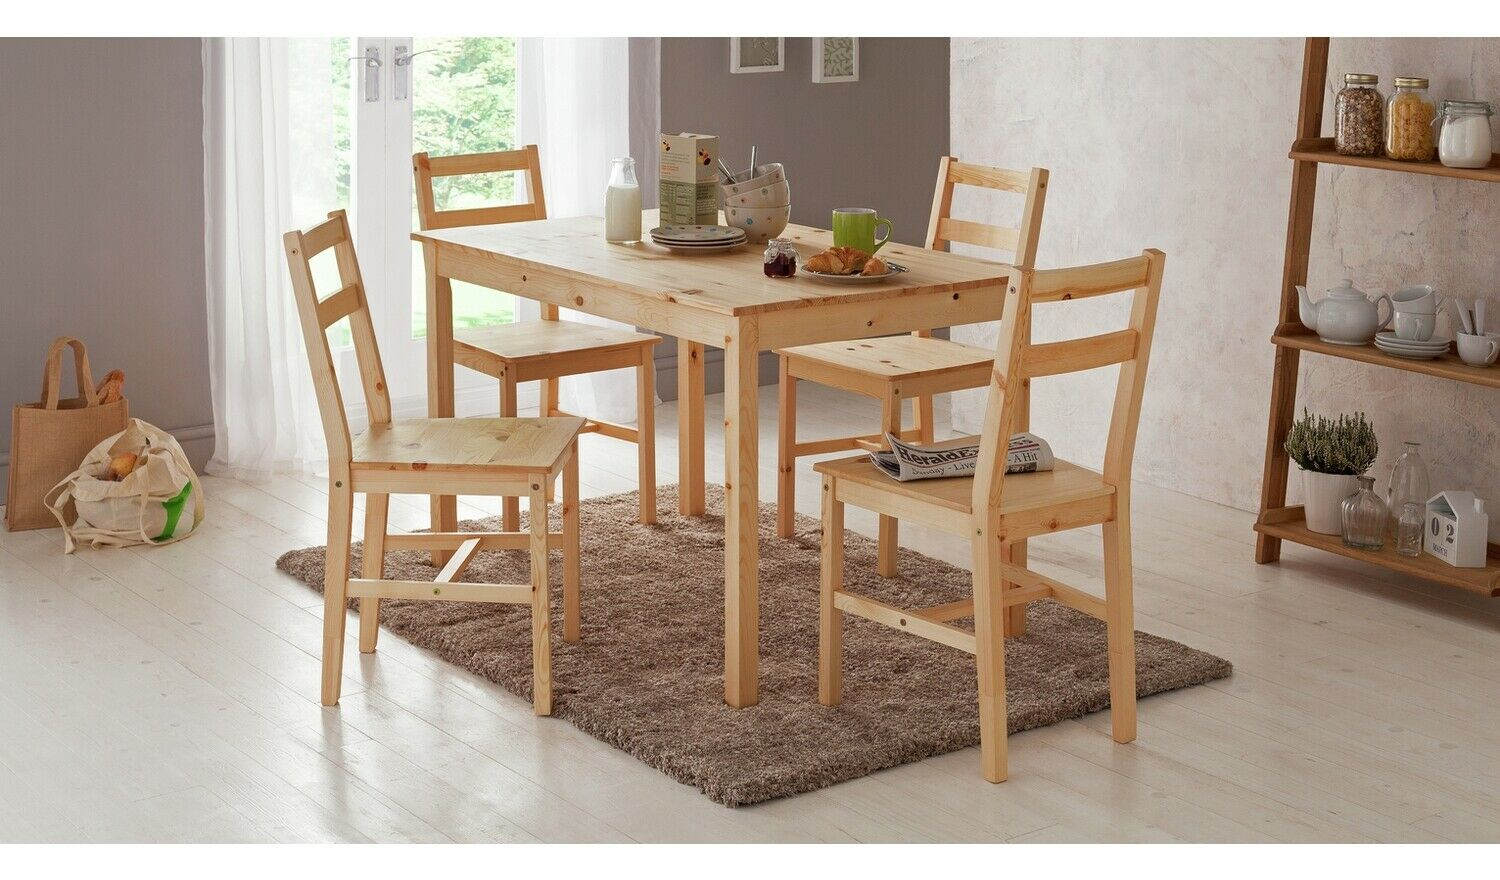 Home Raye Solid Wood Dining Table 4, Used Dining Room Chairs Chicago